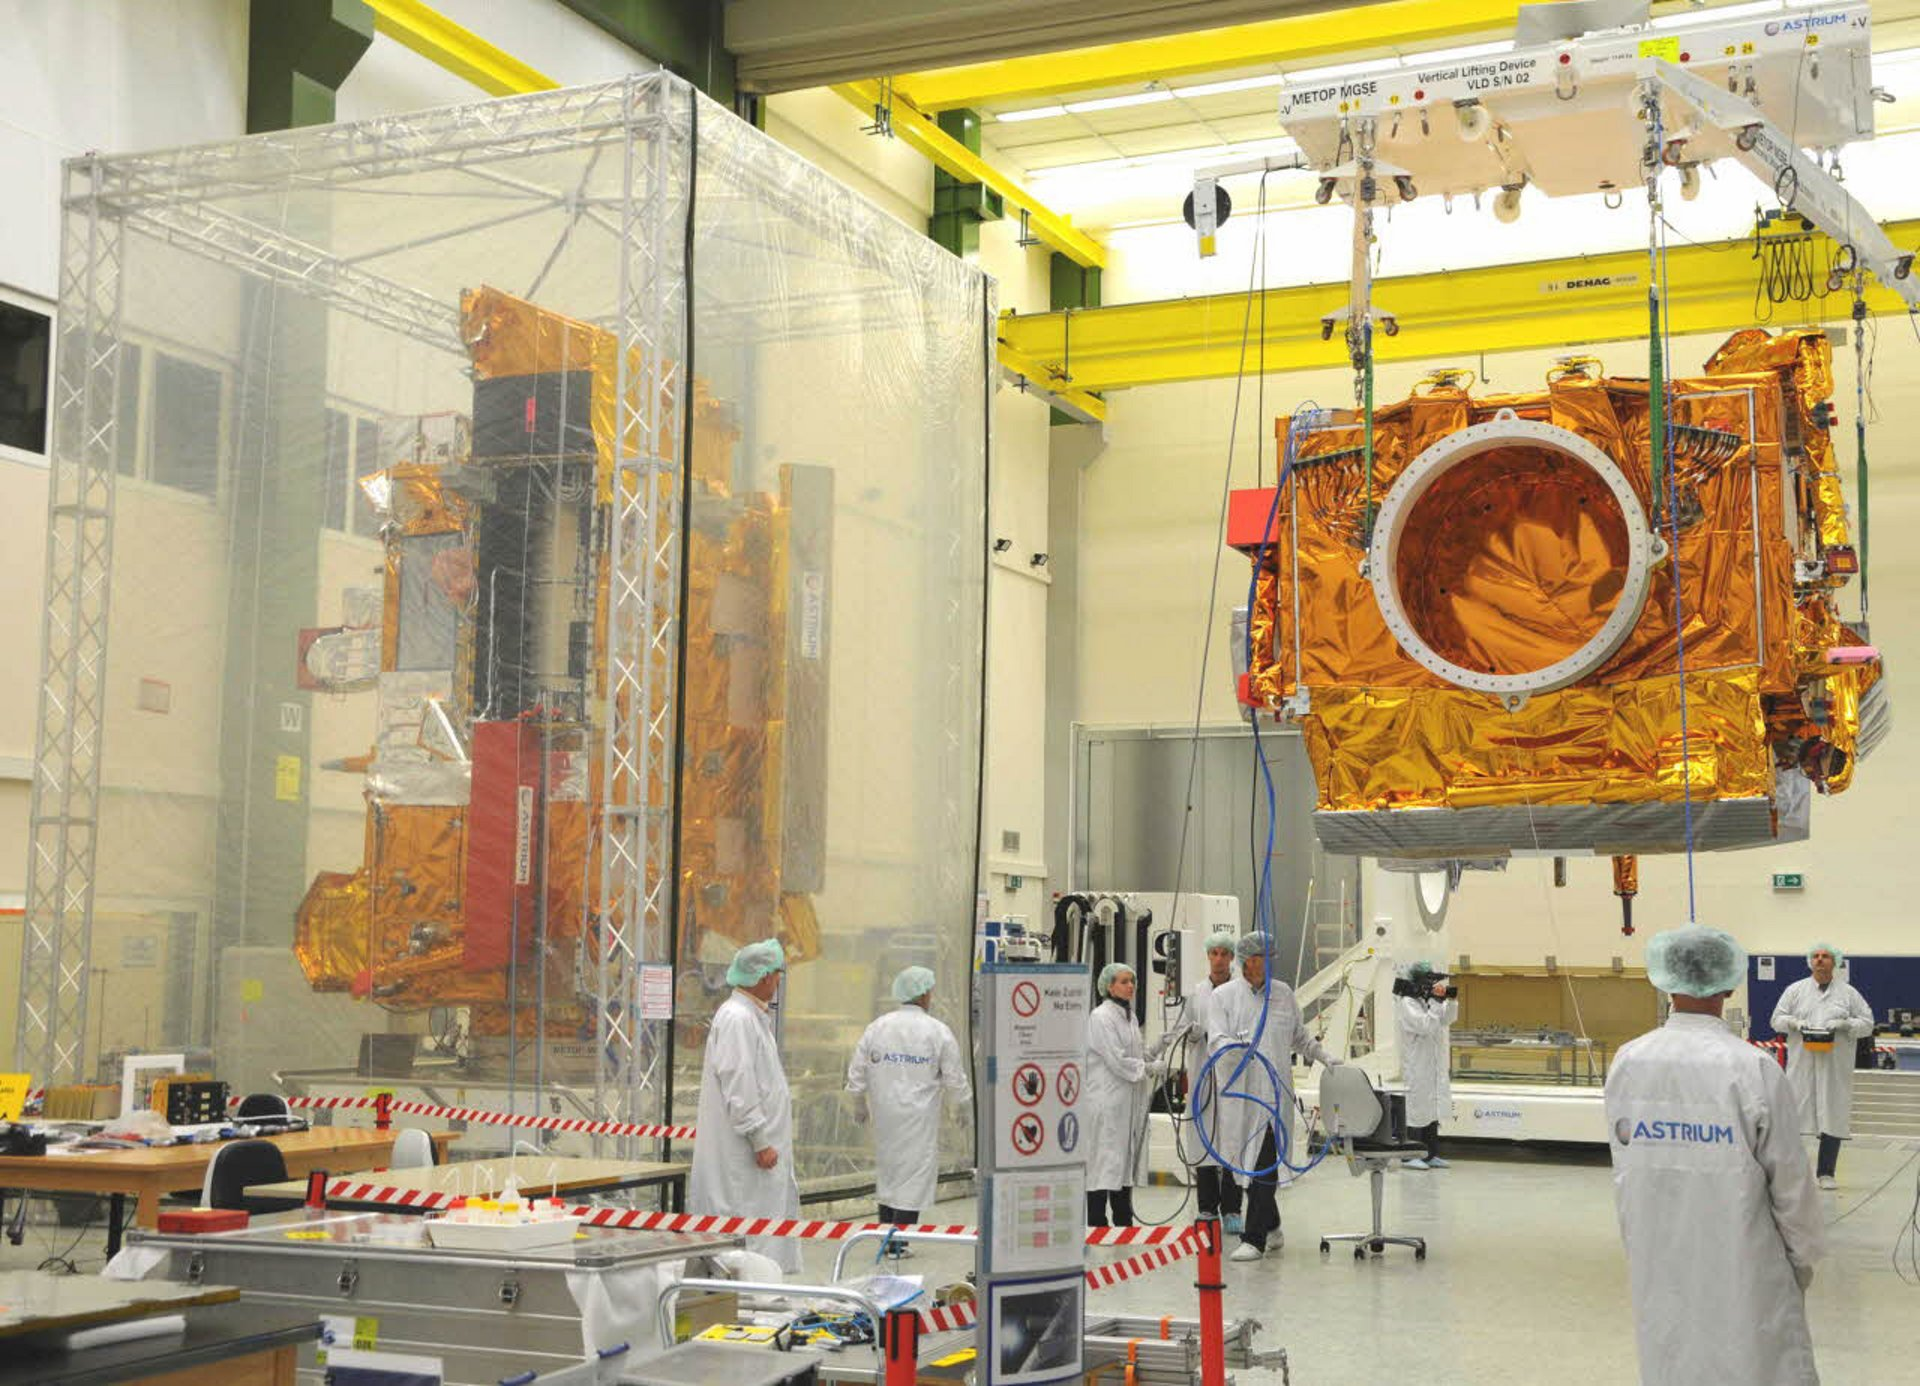 The Airbus-produced Metop-B meteorological satellite is transferred within a clean room facility.